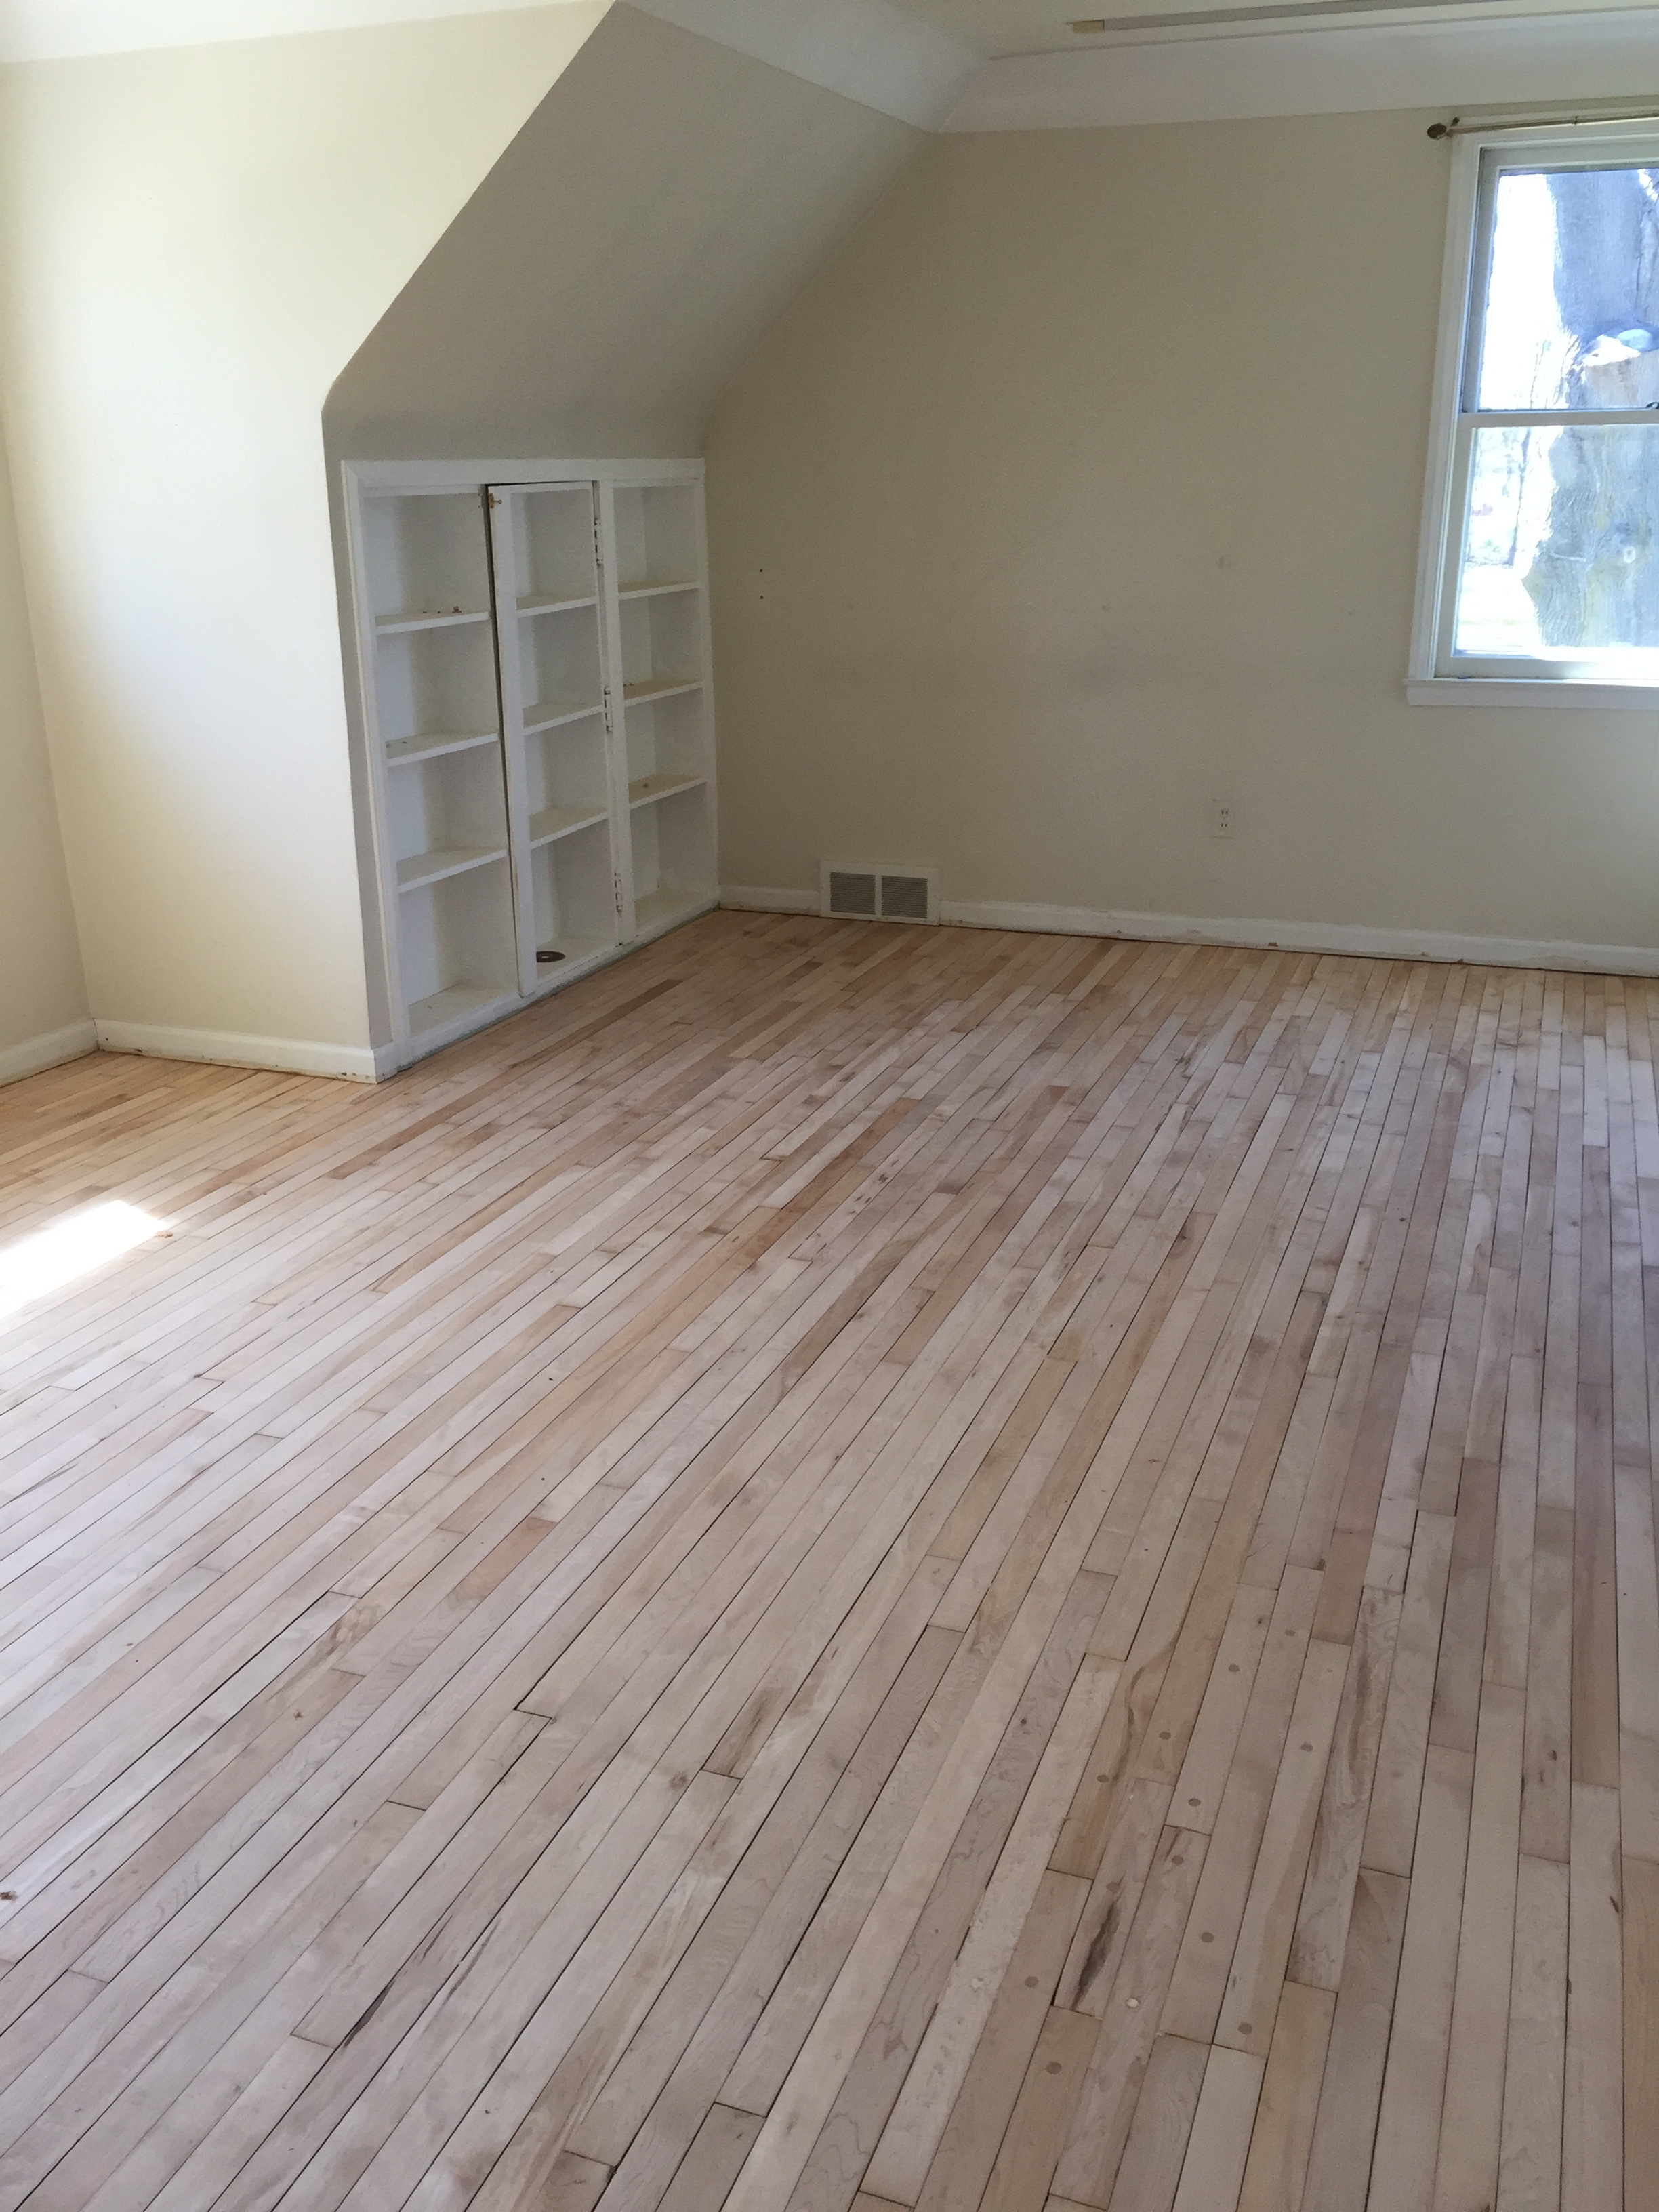 In the process of refinishing 100+ year old wood floors in a carriage house